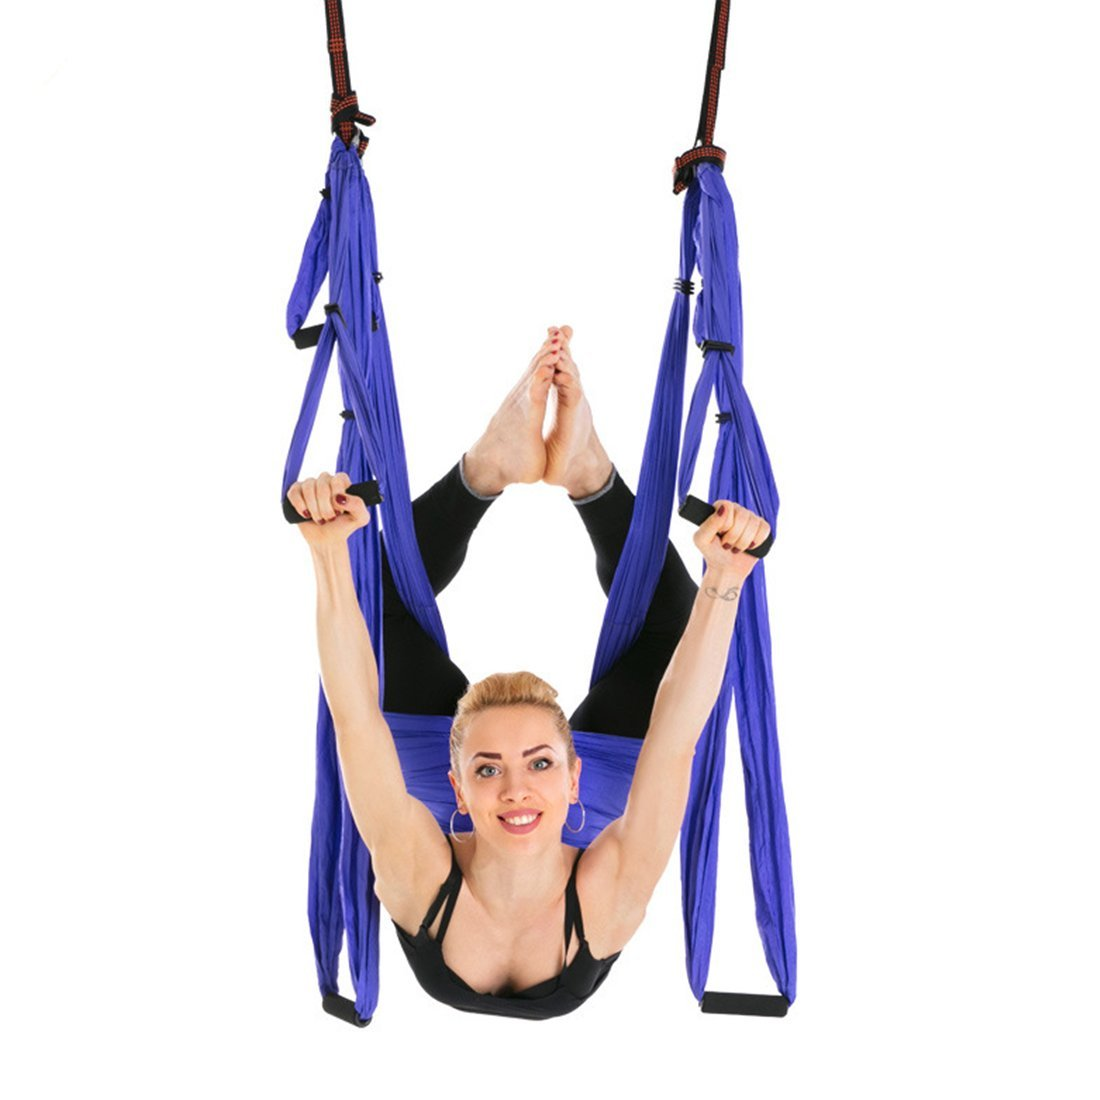 Ranbo Yoga Inversion Swing - Anti-Gravity Aerial Trapeze - Flying Hammock Sling - Relieves Back Pains, Improves your Strength, Balance, Flexibility and Endurance (Light purple)